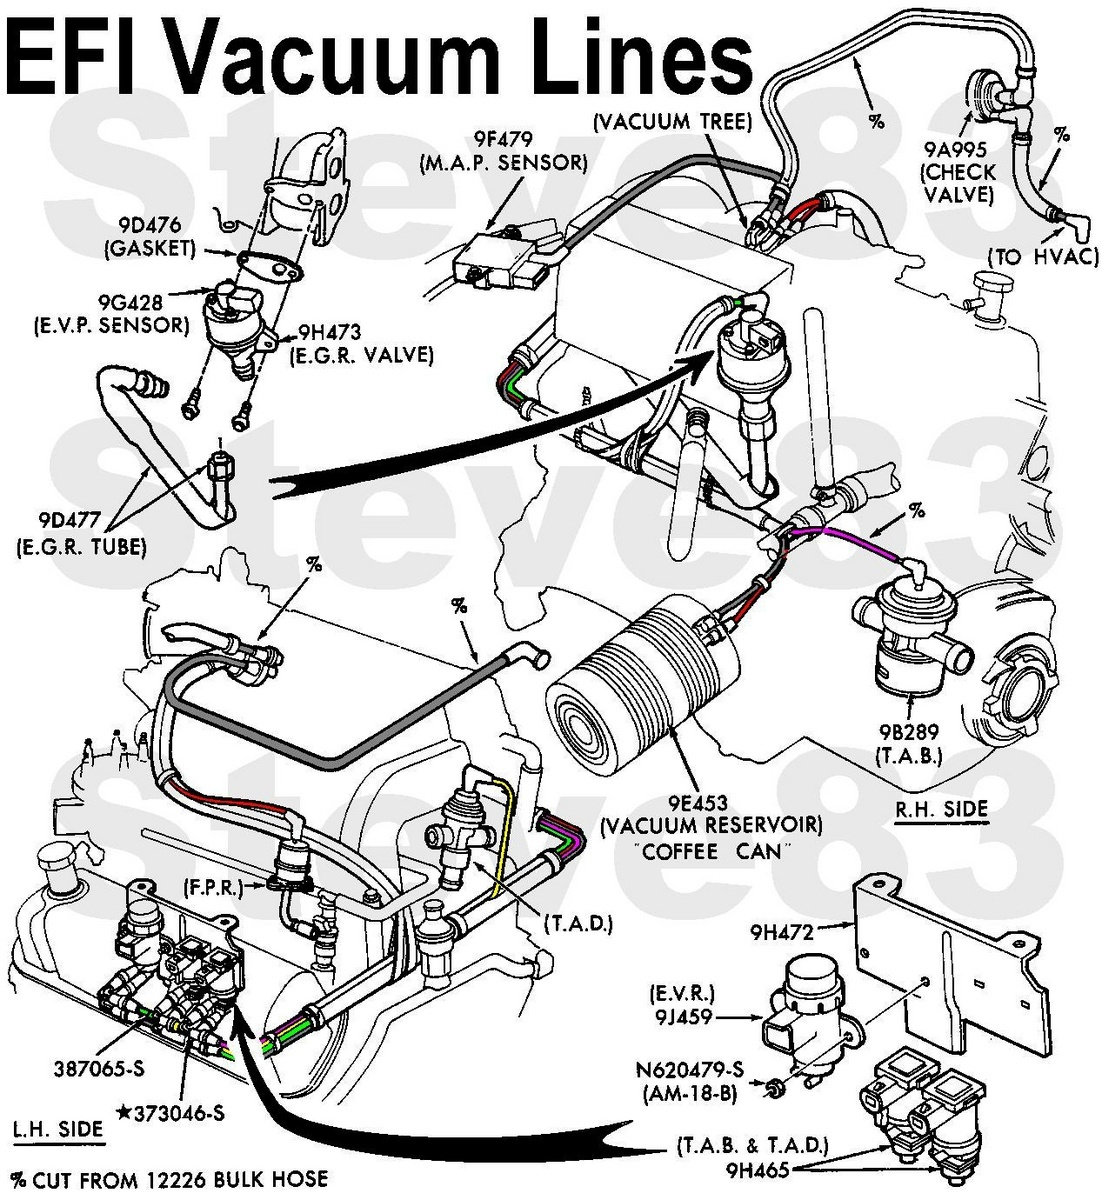 2000 F250 Fuel Line Diagram 2000 Free Engine Image For